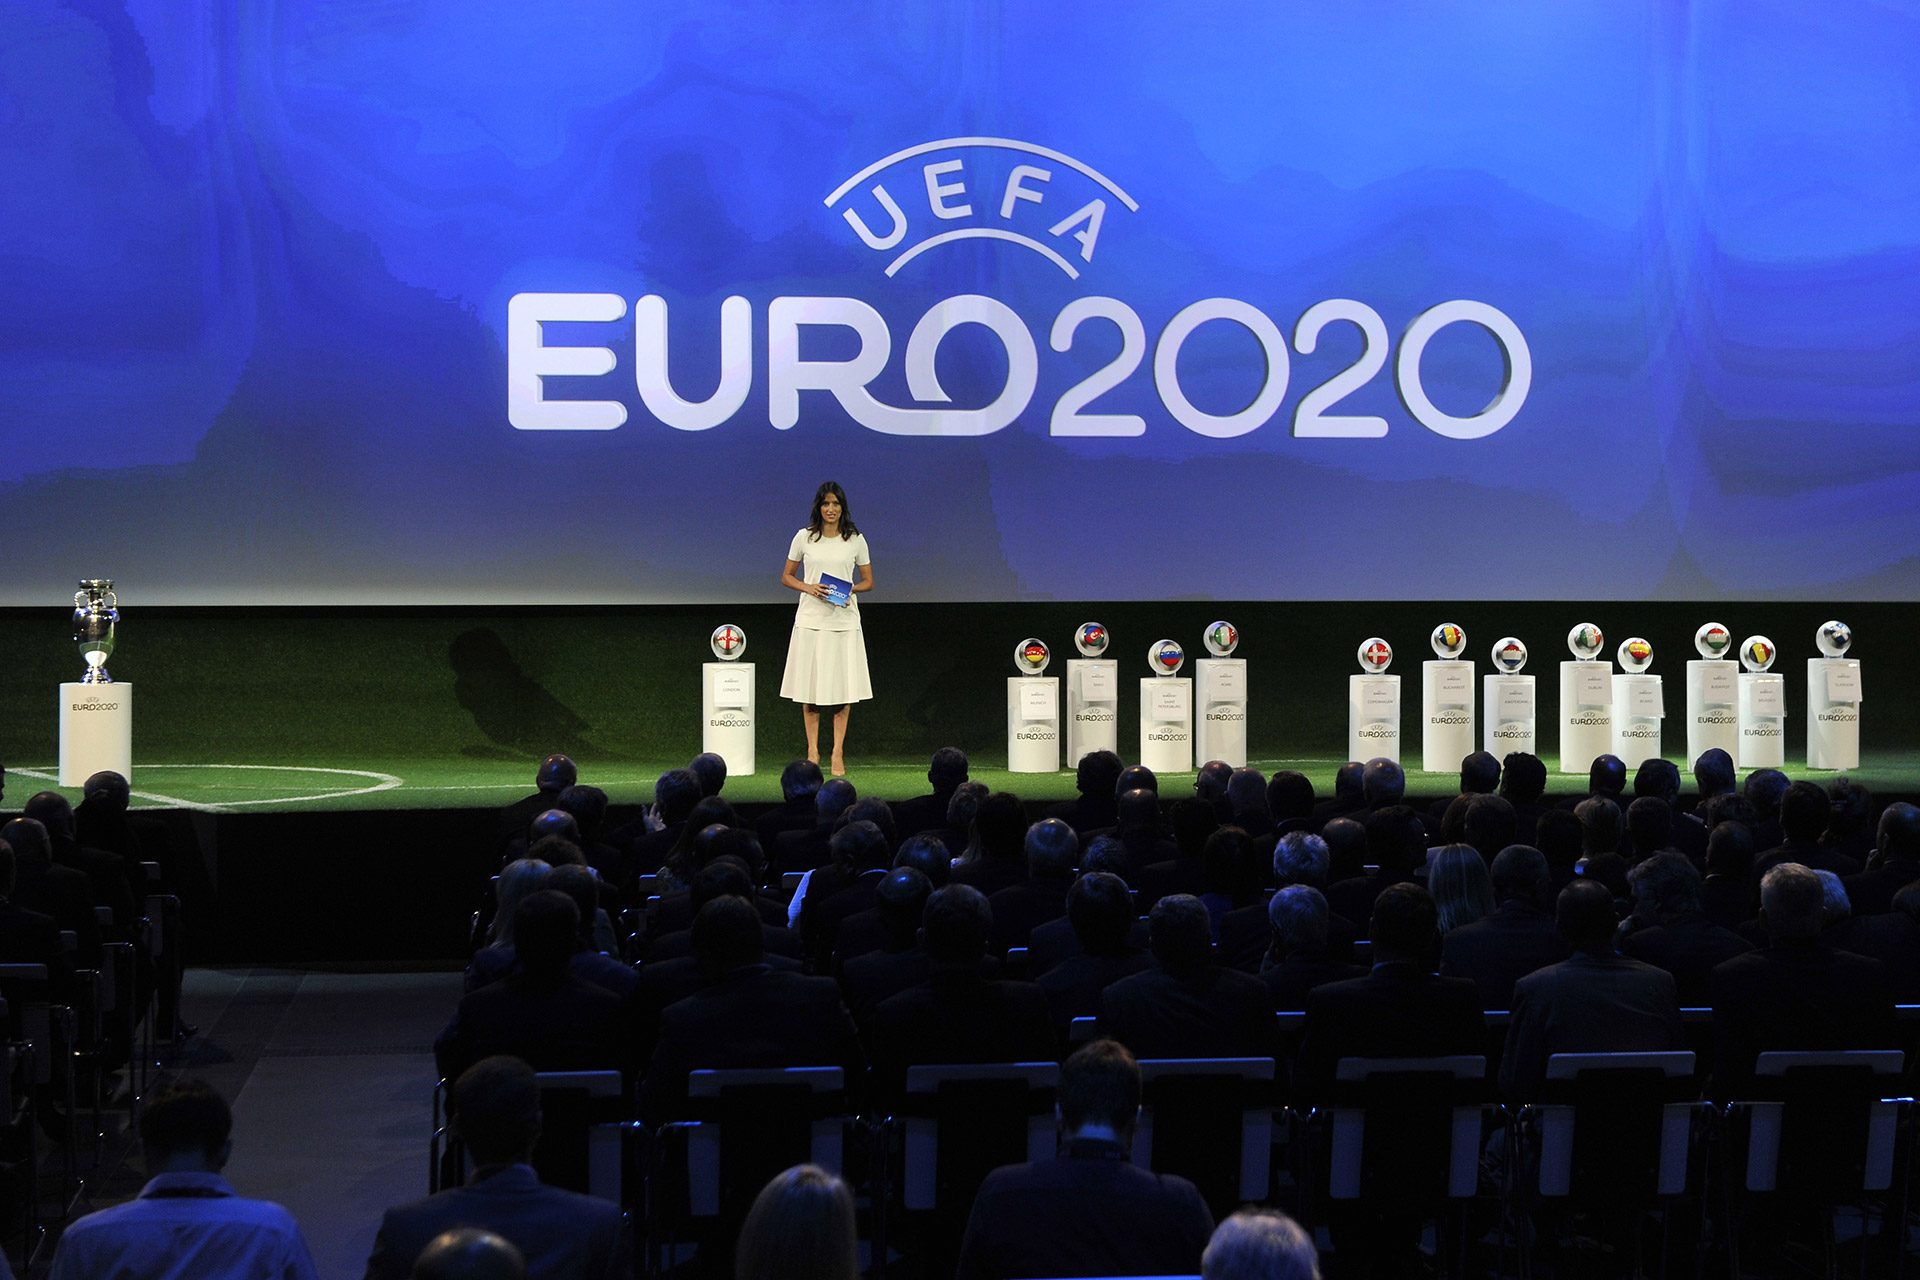 UEFA EURO 2020 ANNOUNCEMENT CEREMONY